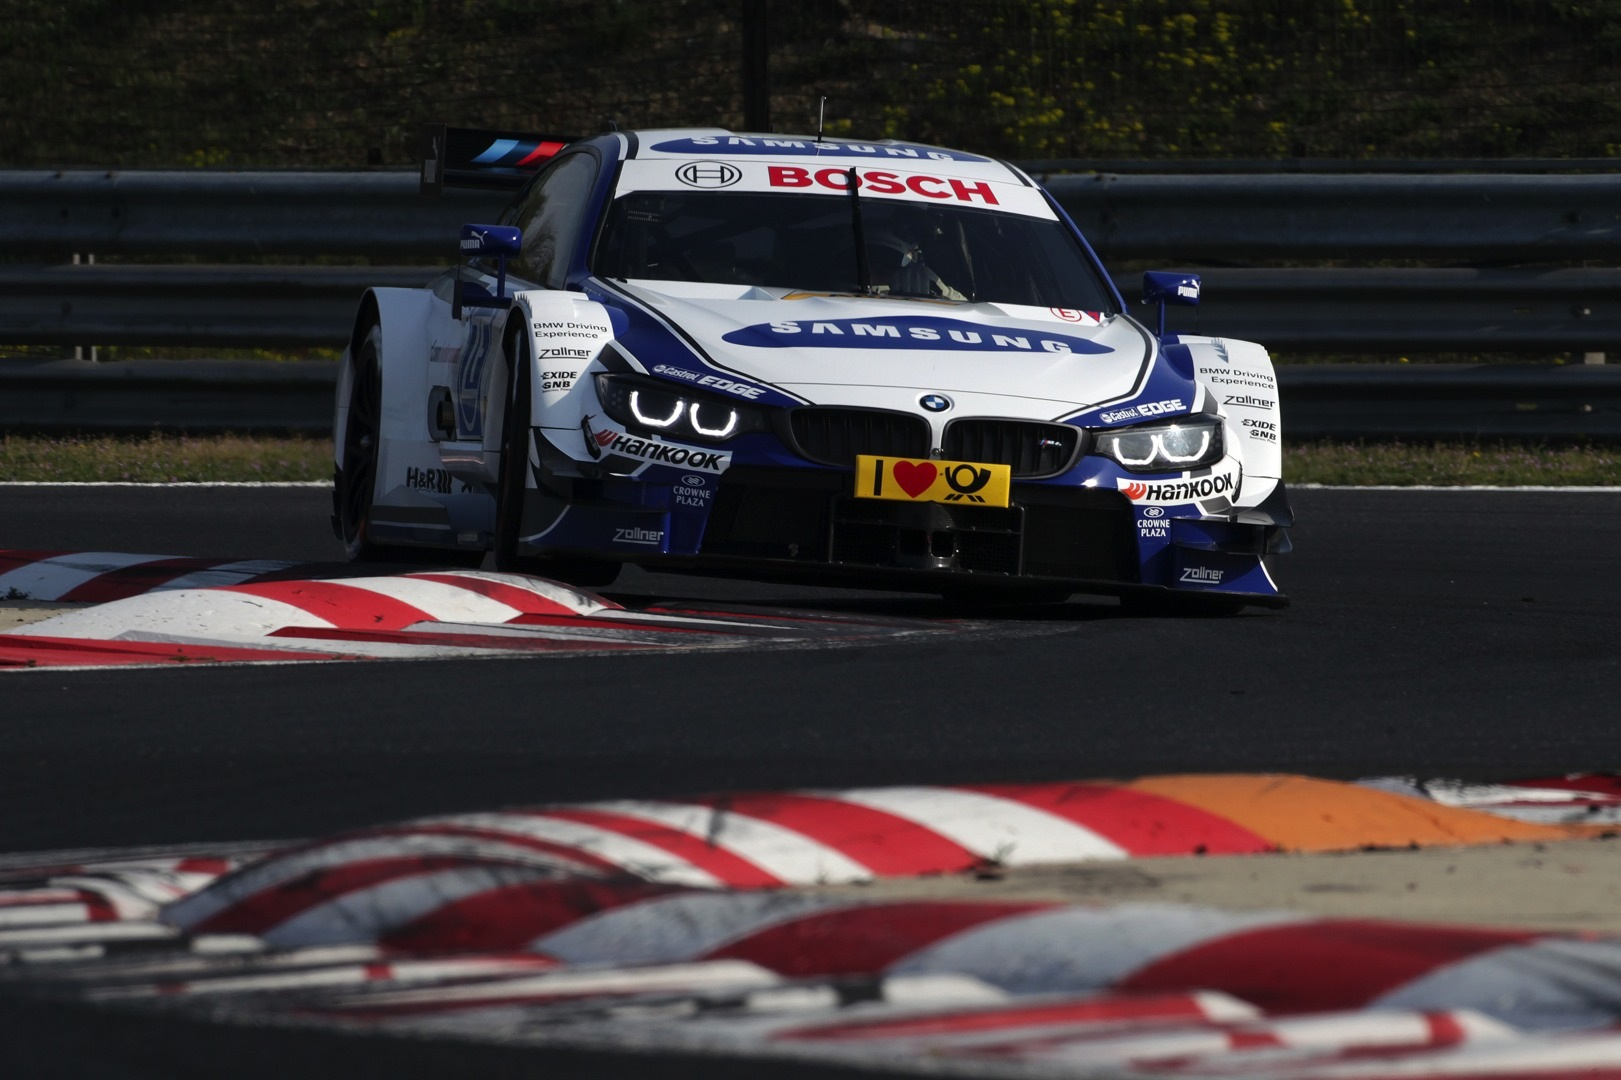 Bmw Motorsport Signs Deal With Mahle For 2014 Season